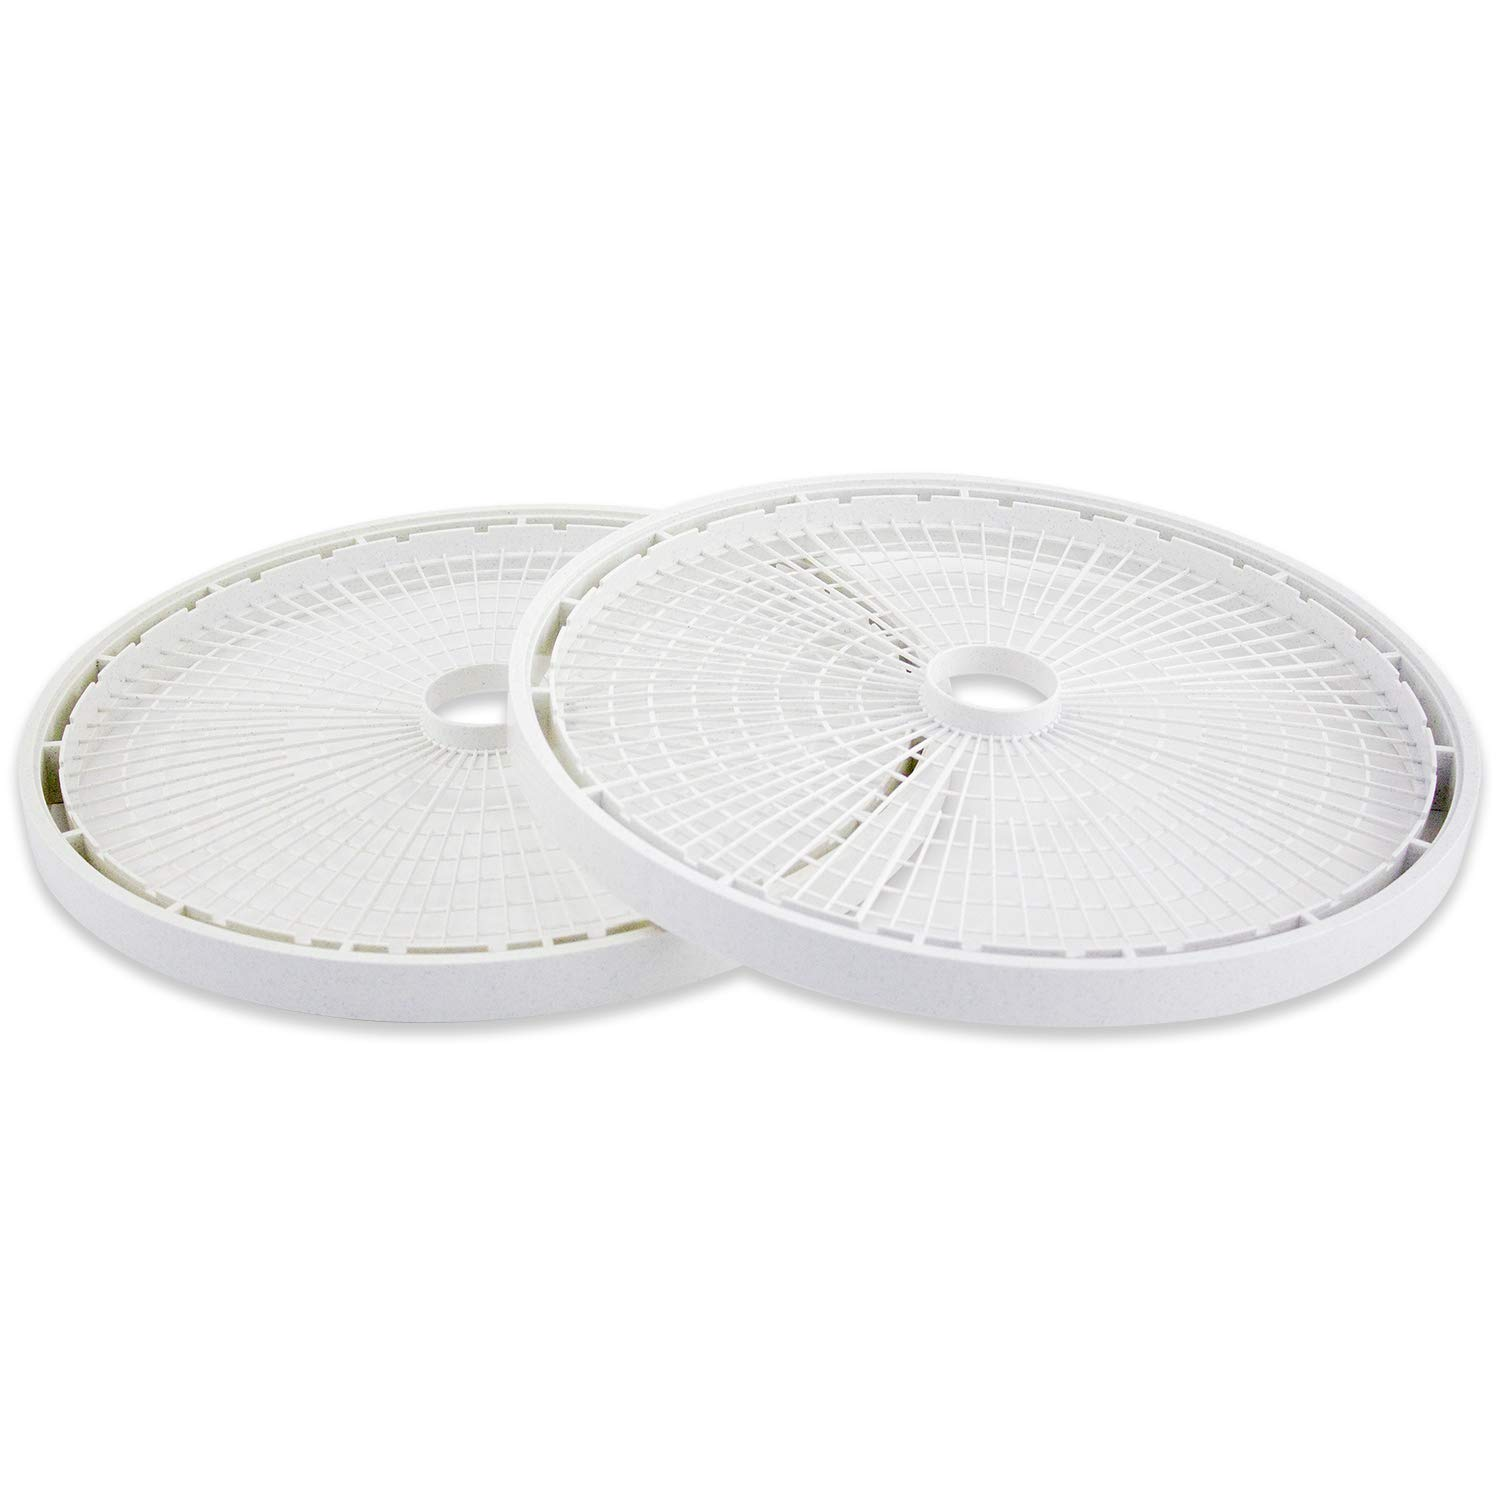 Nesco TR-2 Add-A-Tray for Dehydrators FD-1010/FD-1018P/FD-1020, Set of 2